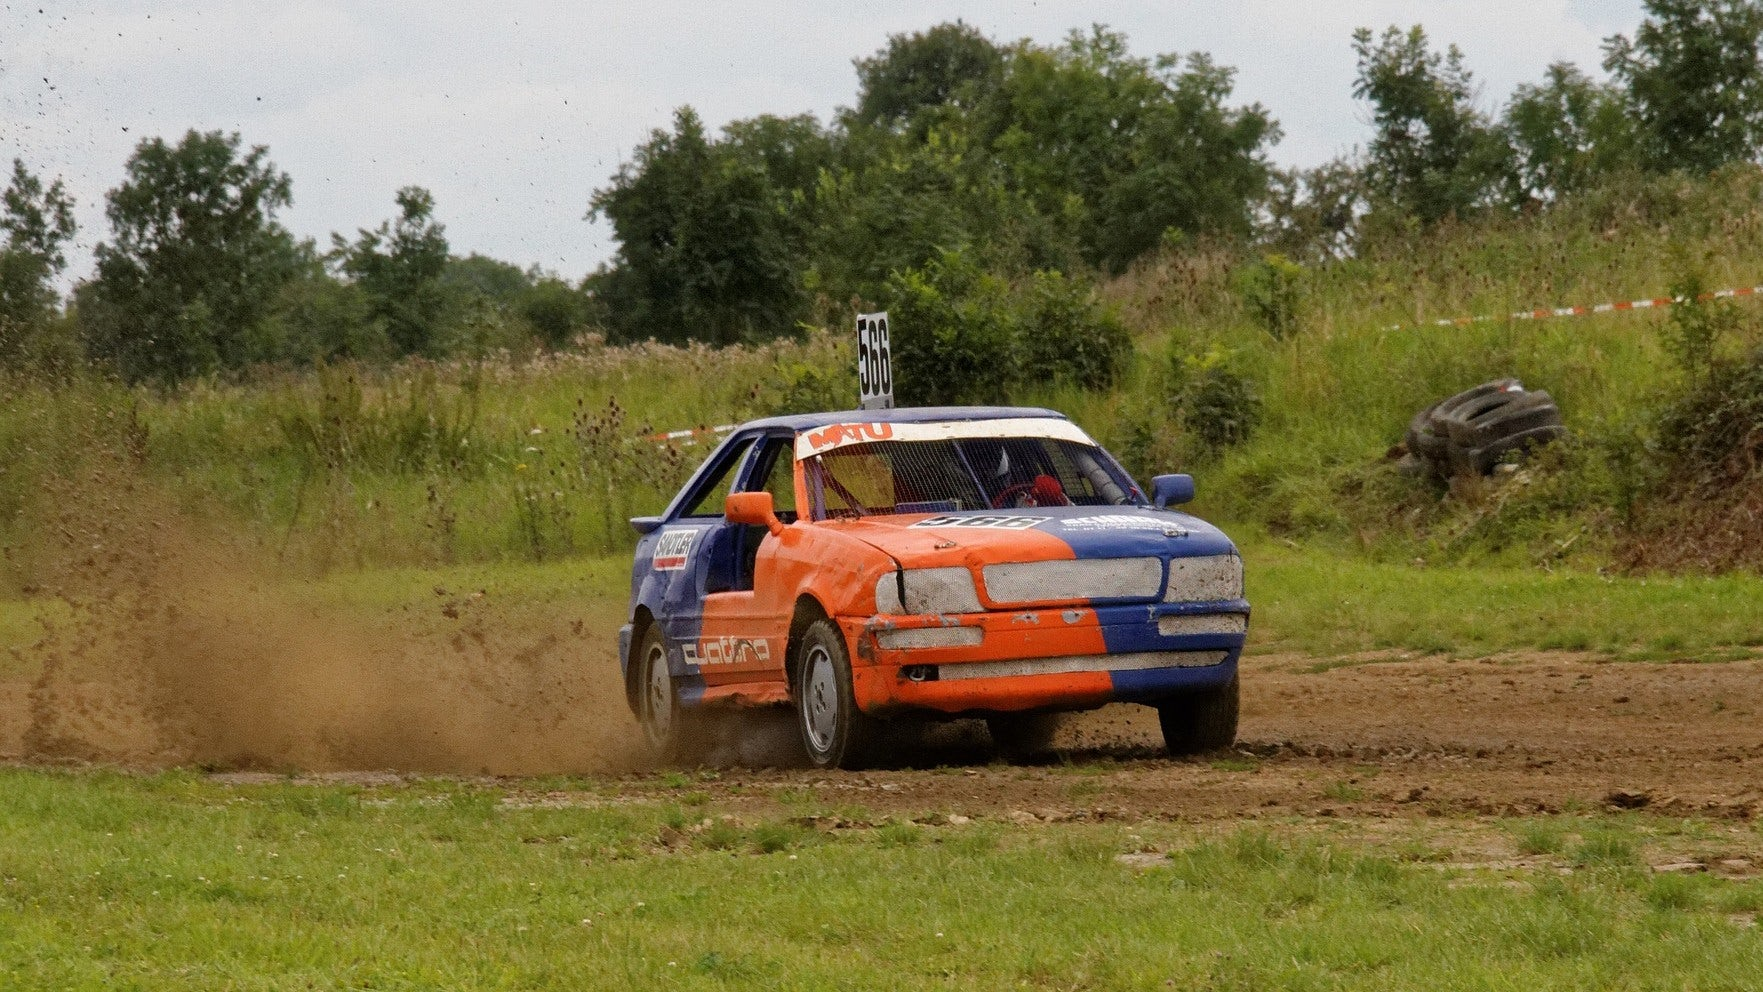 A car on off-road surface